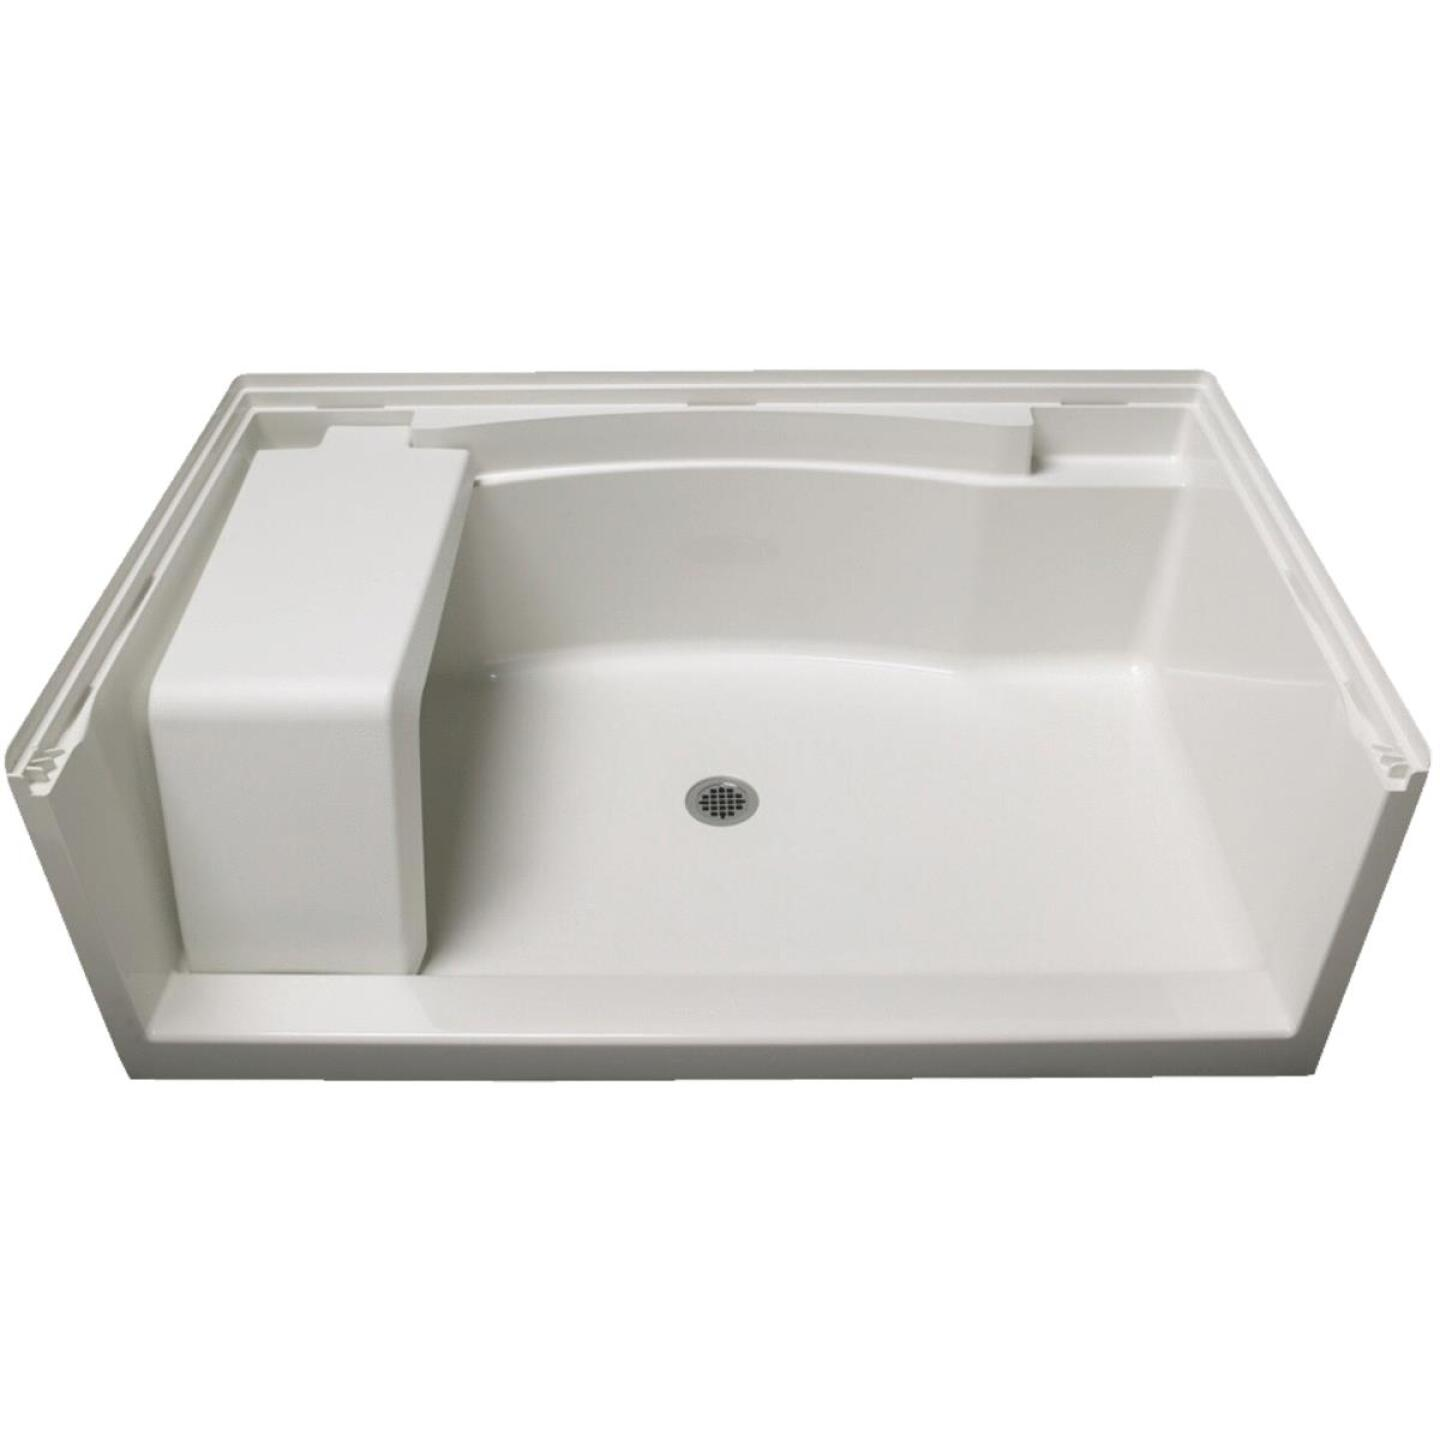 Sterling Accord 60 In. W x 36 In. D Center Drain Seated Shower Floor & Base in White Image 1